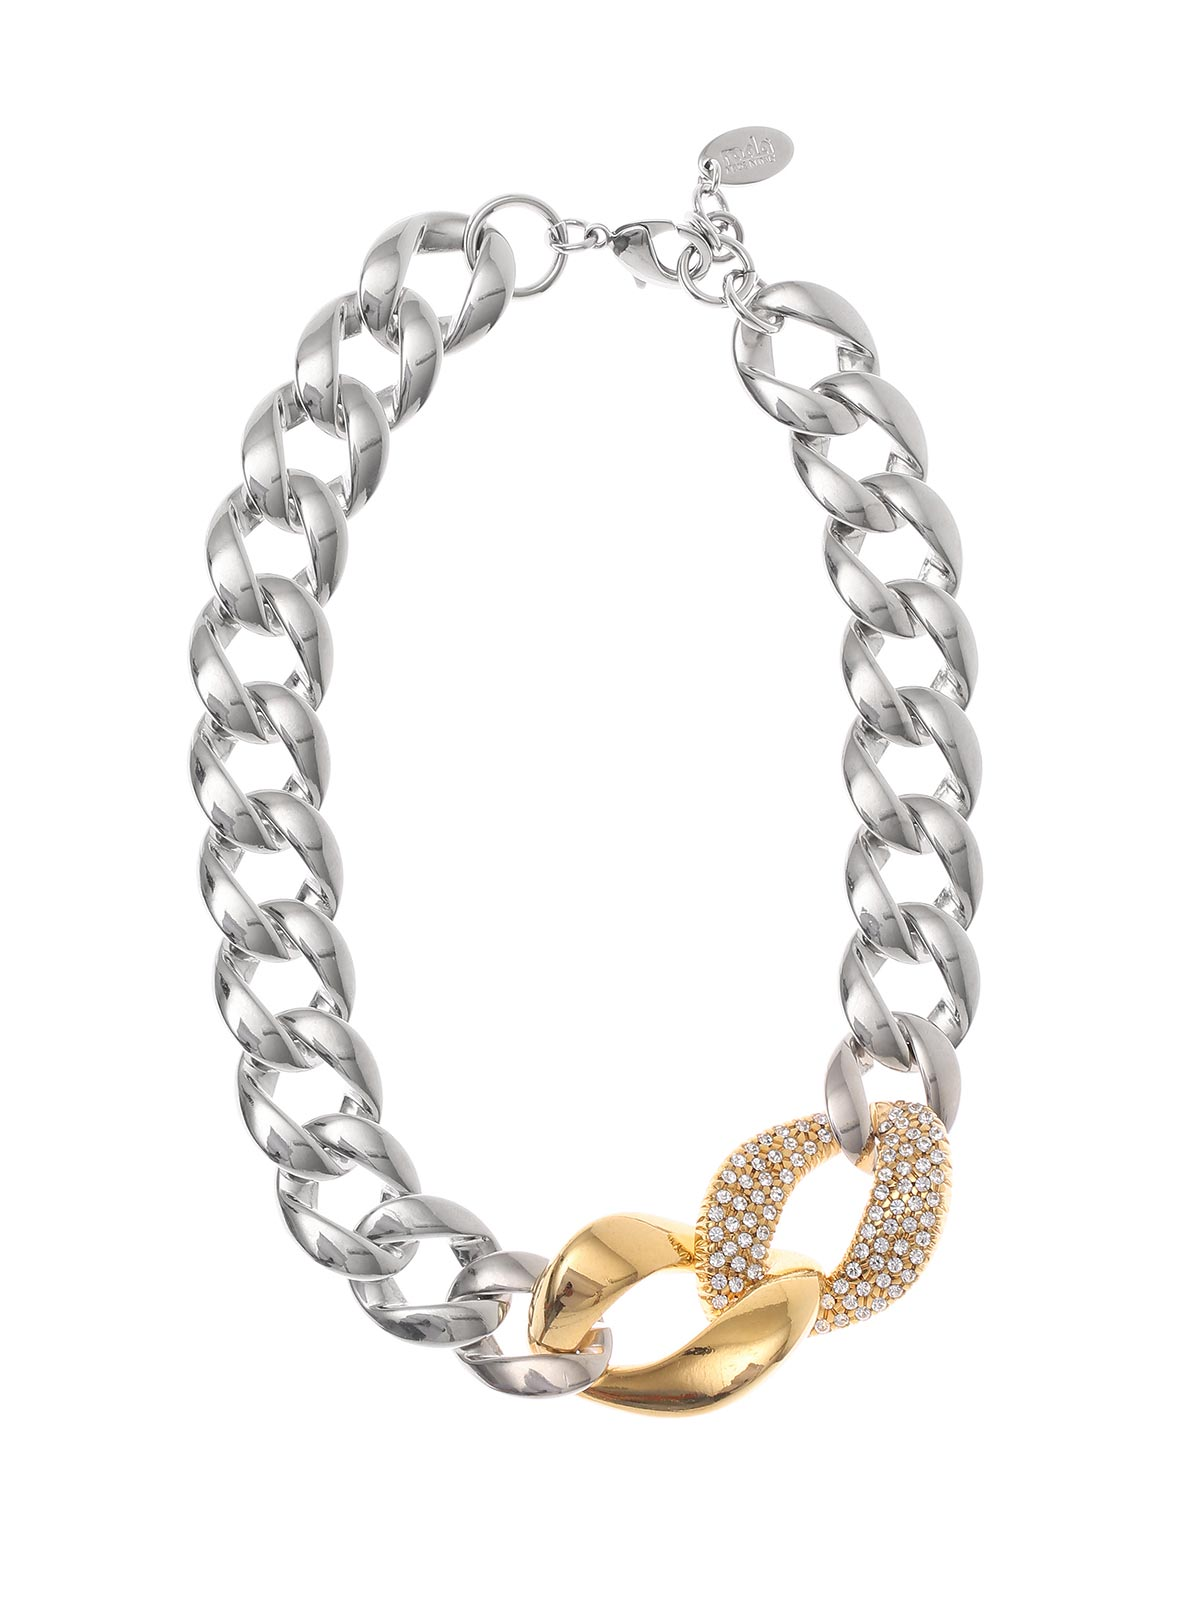 Two-tone brass necklace with jewel chain